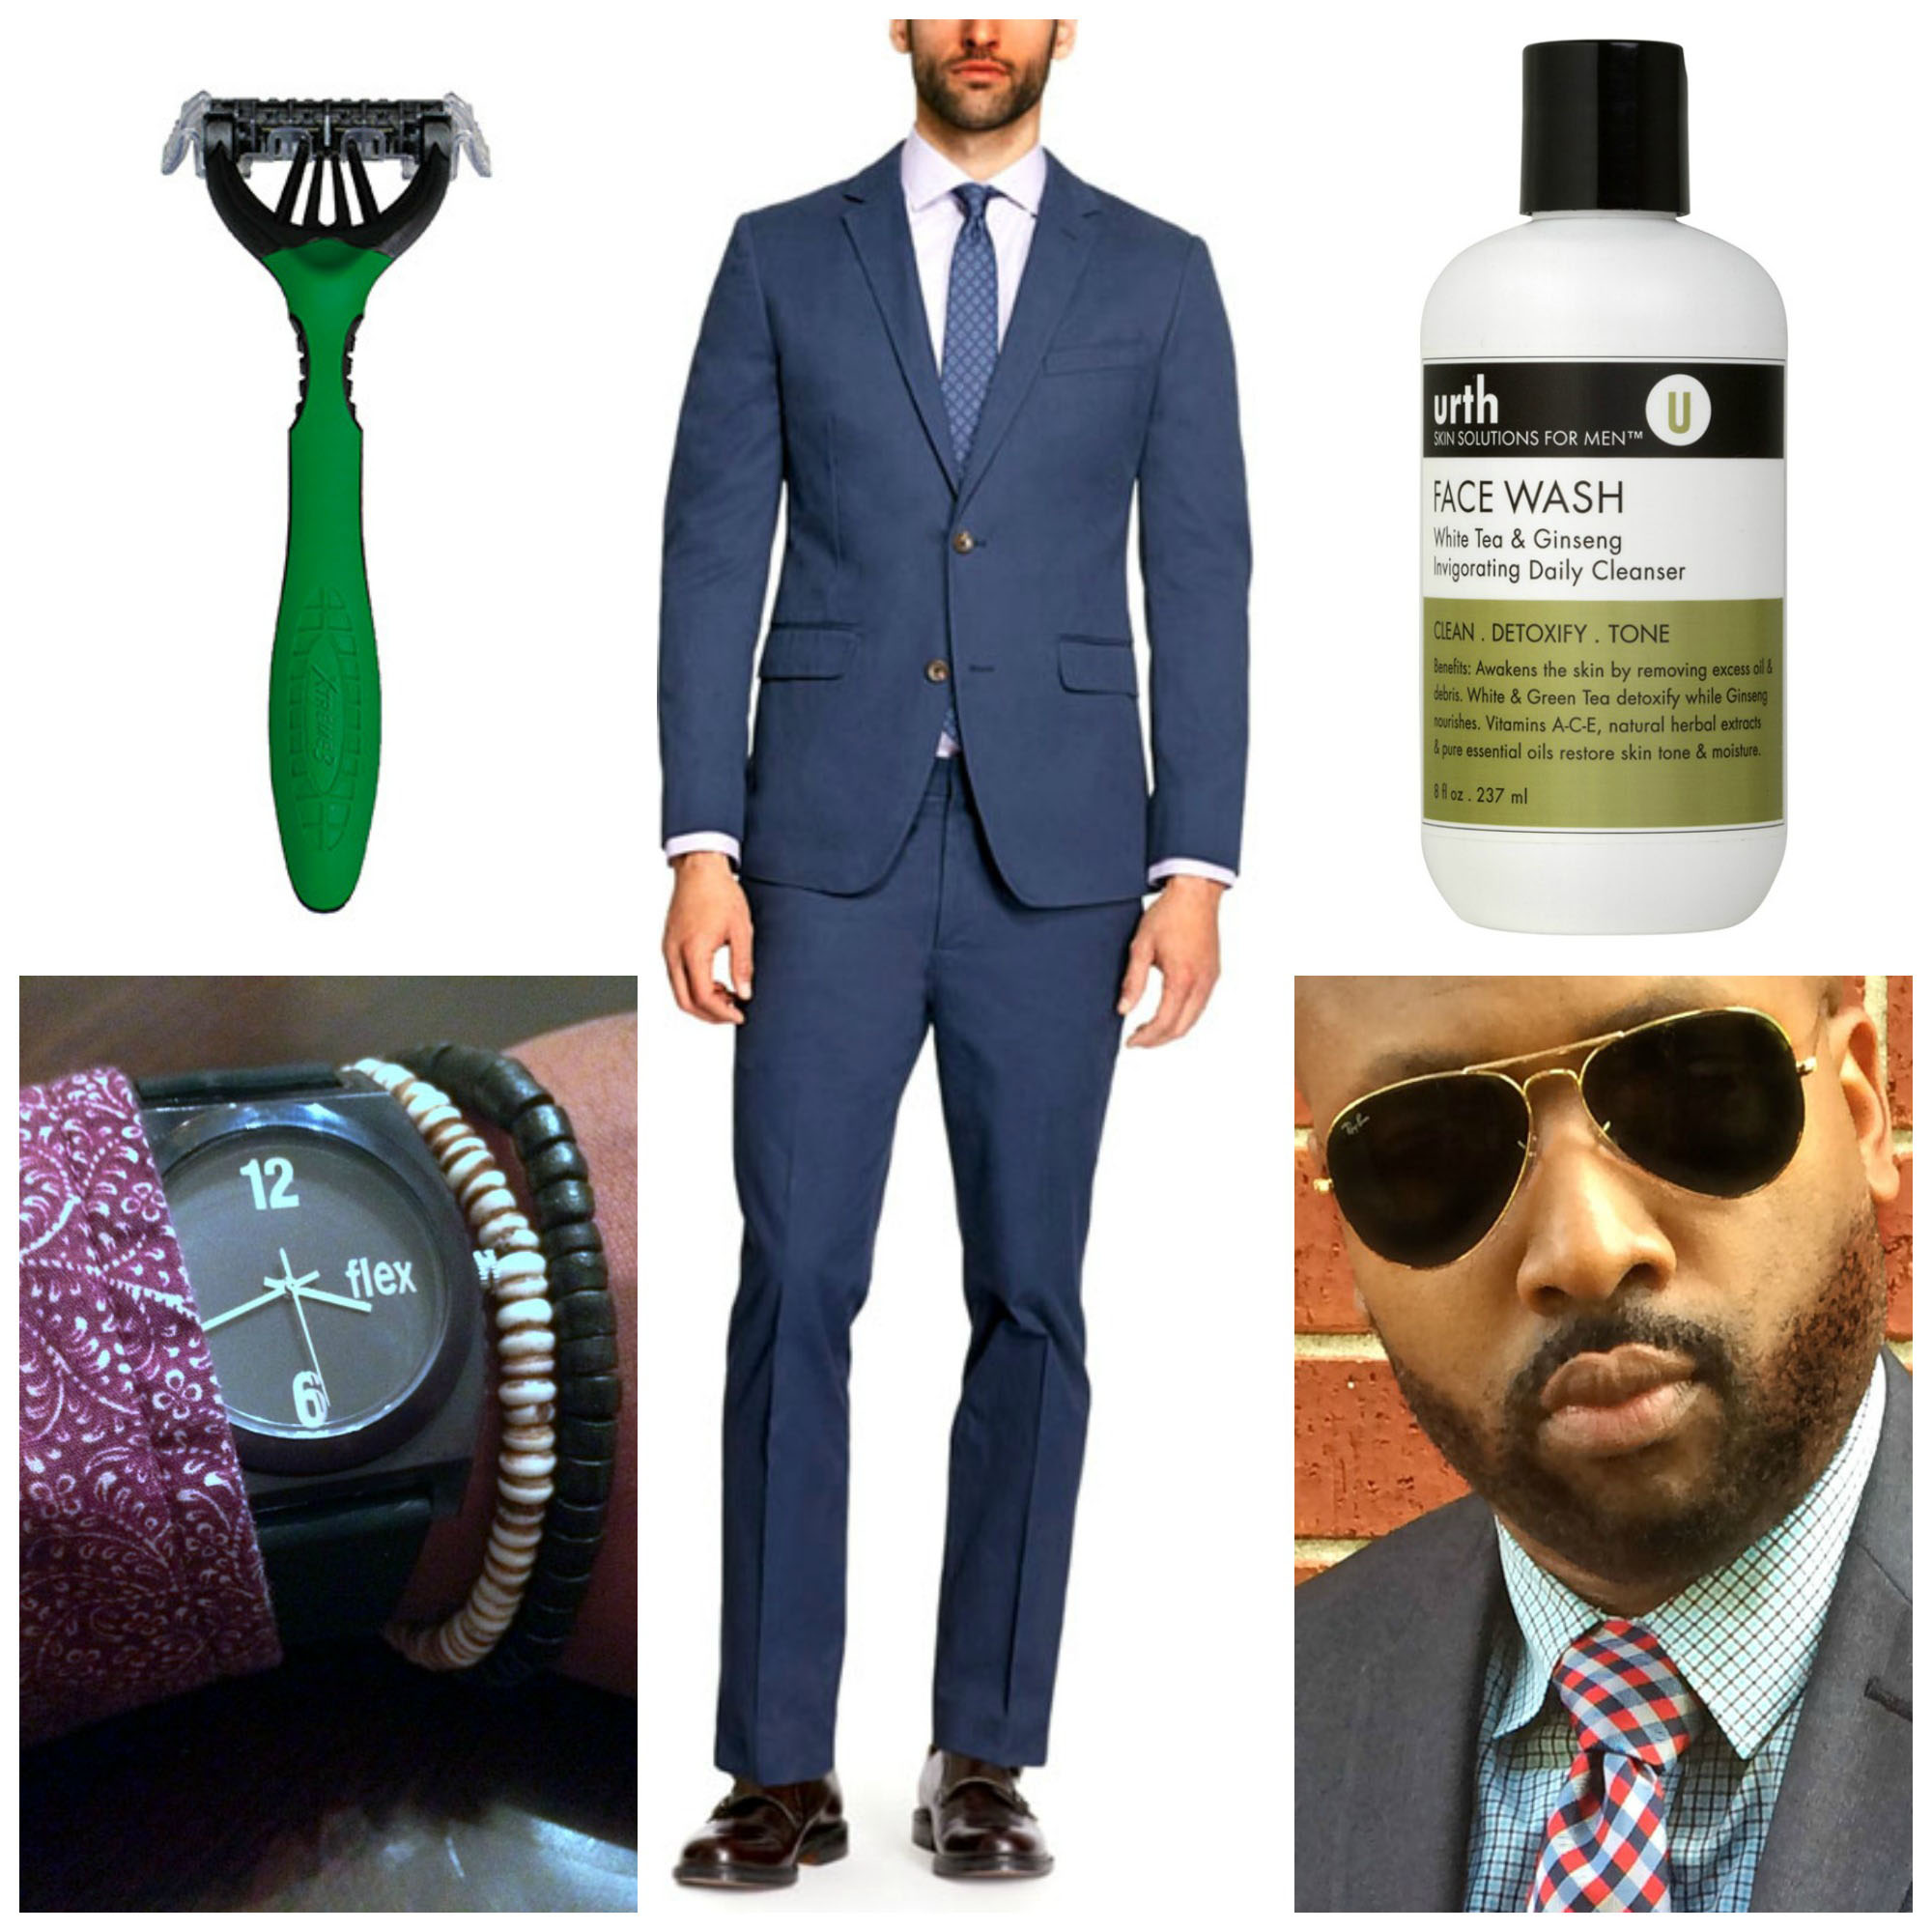 Spring Fashion and Grooming Essentials That You Can't Live Without